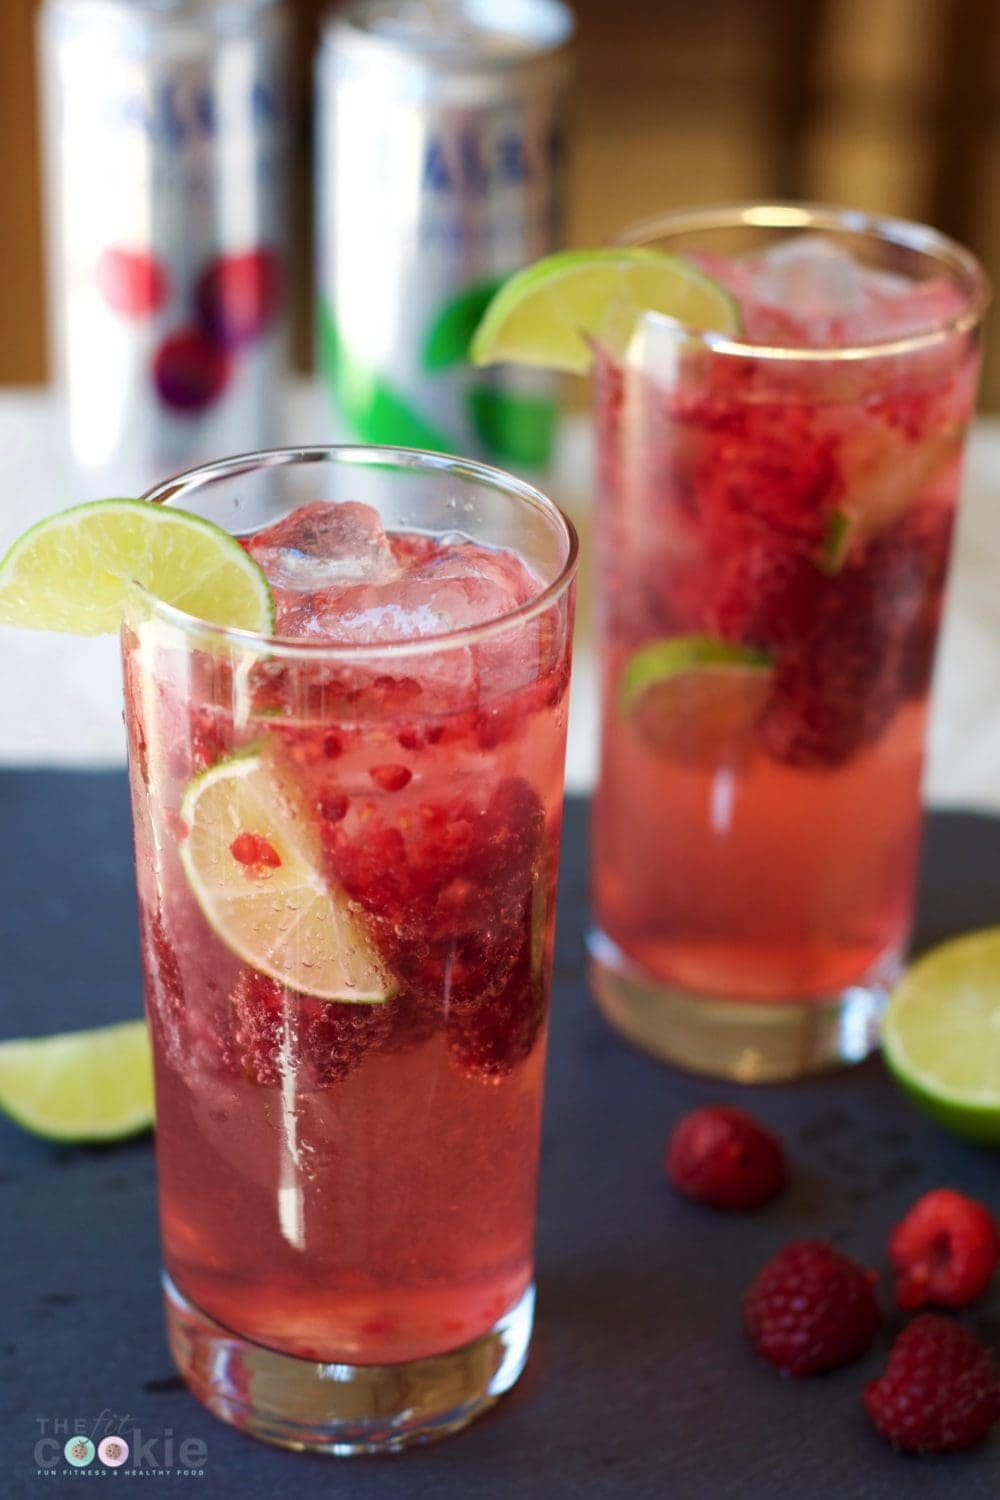 Take a break from the heat with this refreshing Rasberry Lime Sparkling Water mocktail made with DASANI® Sparkling. It's low carb, has no added sugar, and natural - #ad @thefitcookie #cbias #FindYourSparkle @dasaniwater #glutenfree #vegan #lowcarb #mocktail